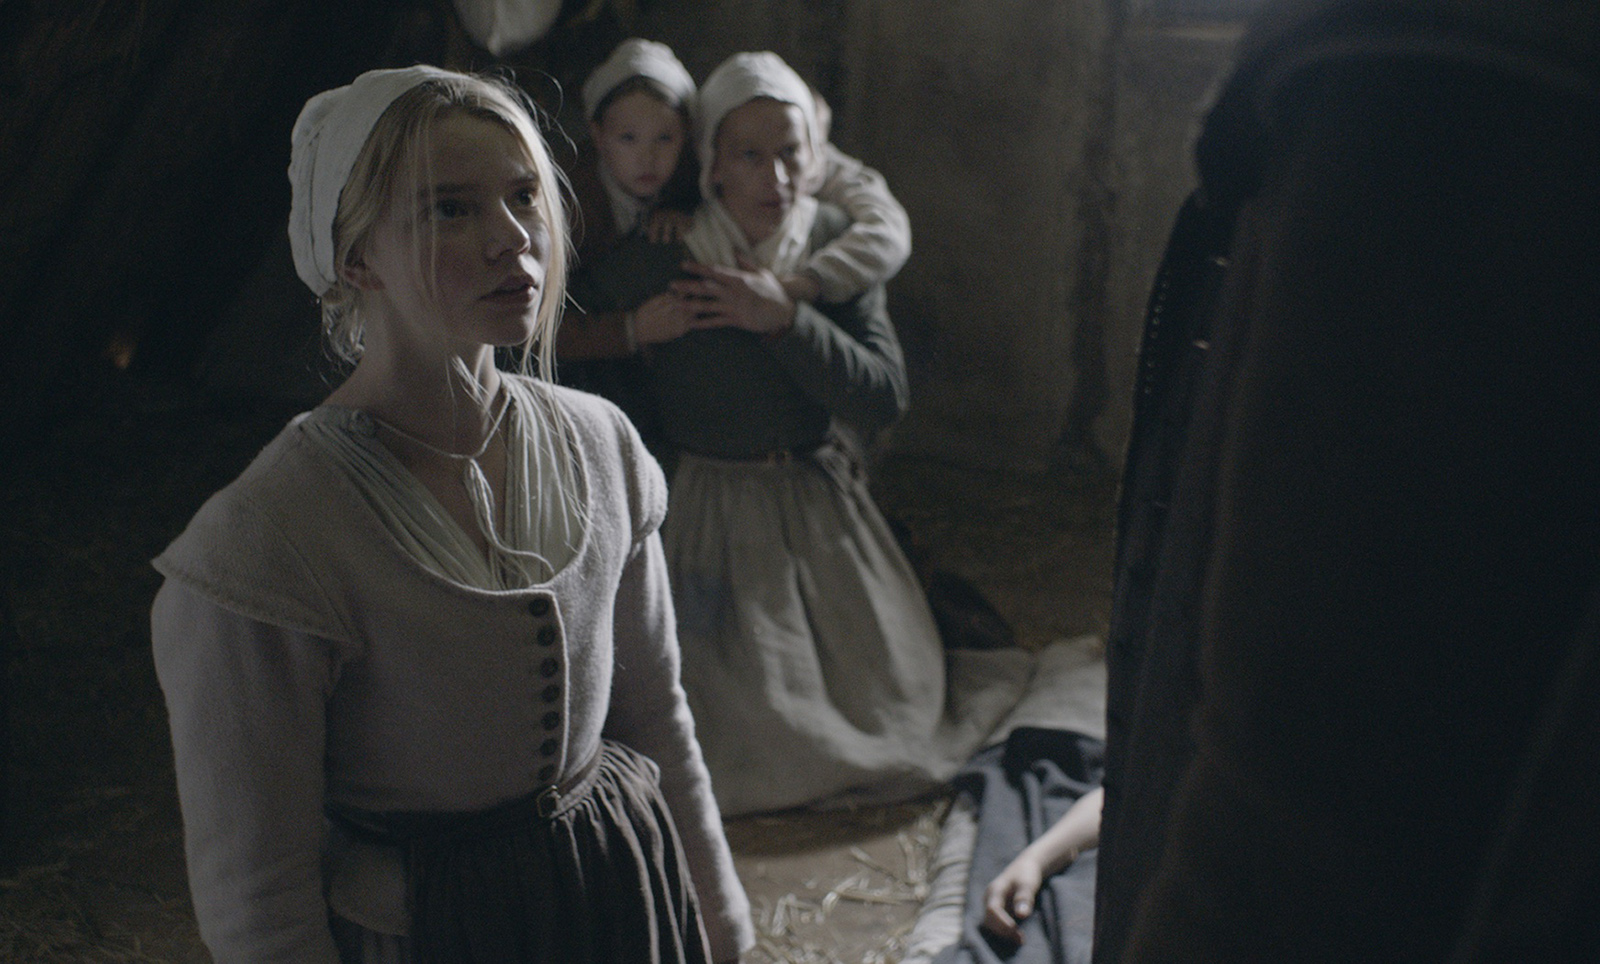 THE WITCH - Image 5 Anya Taylor Joy Film 2016 Universal Pictures - Go with the Blog